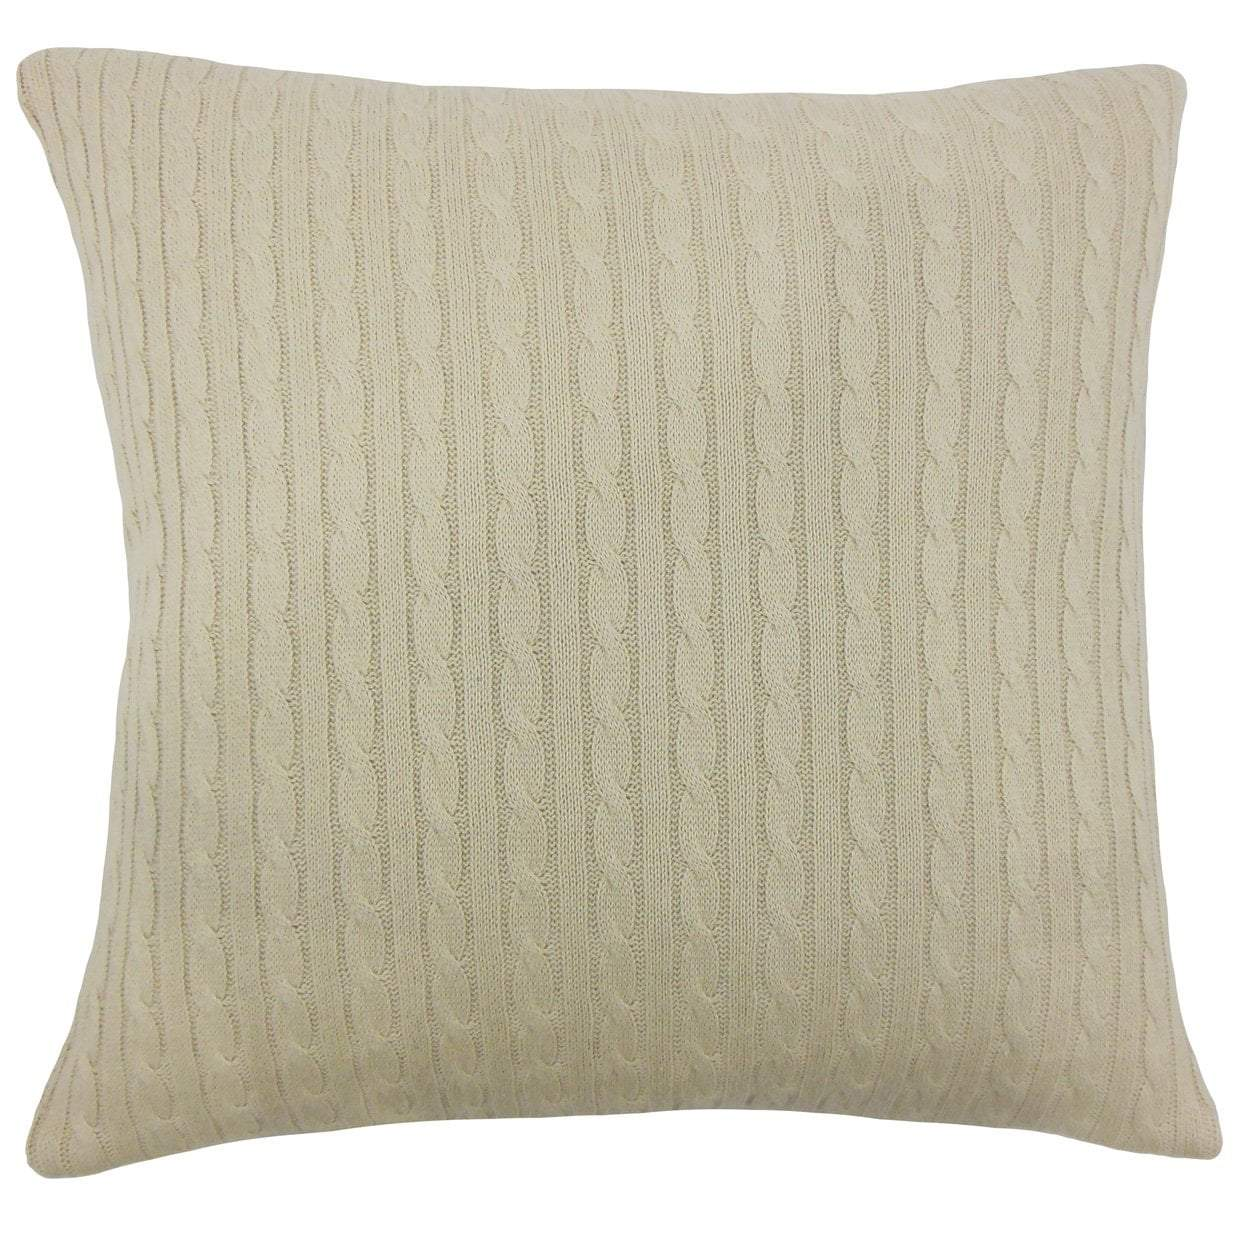 Vargas Throw Pillow Cover